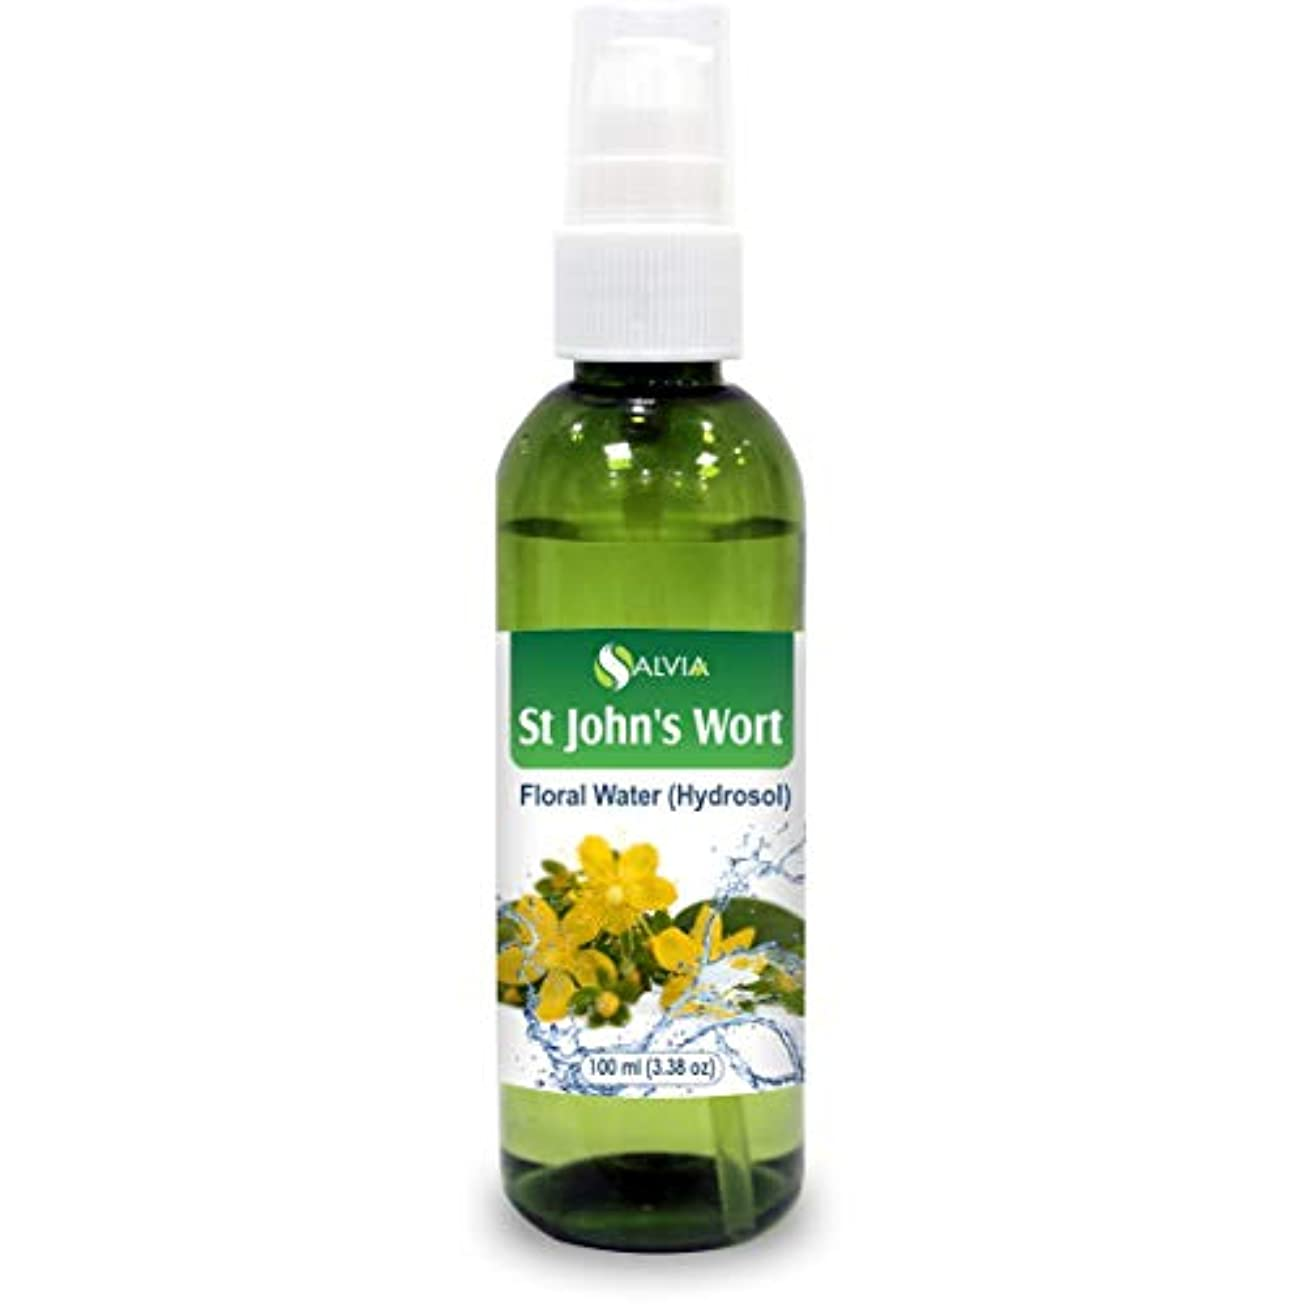 きしむ区画商標St John's Wort Floral Water 100ml (Hydrosol) 100% Pure And Natural